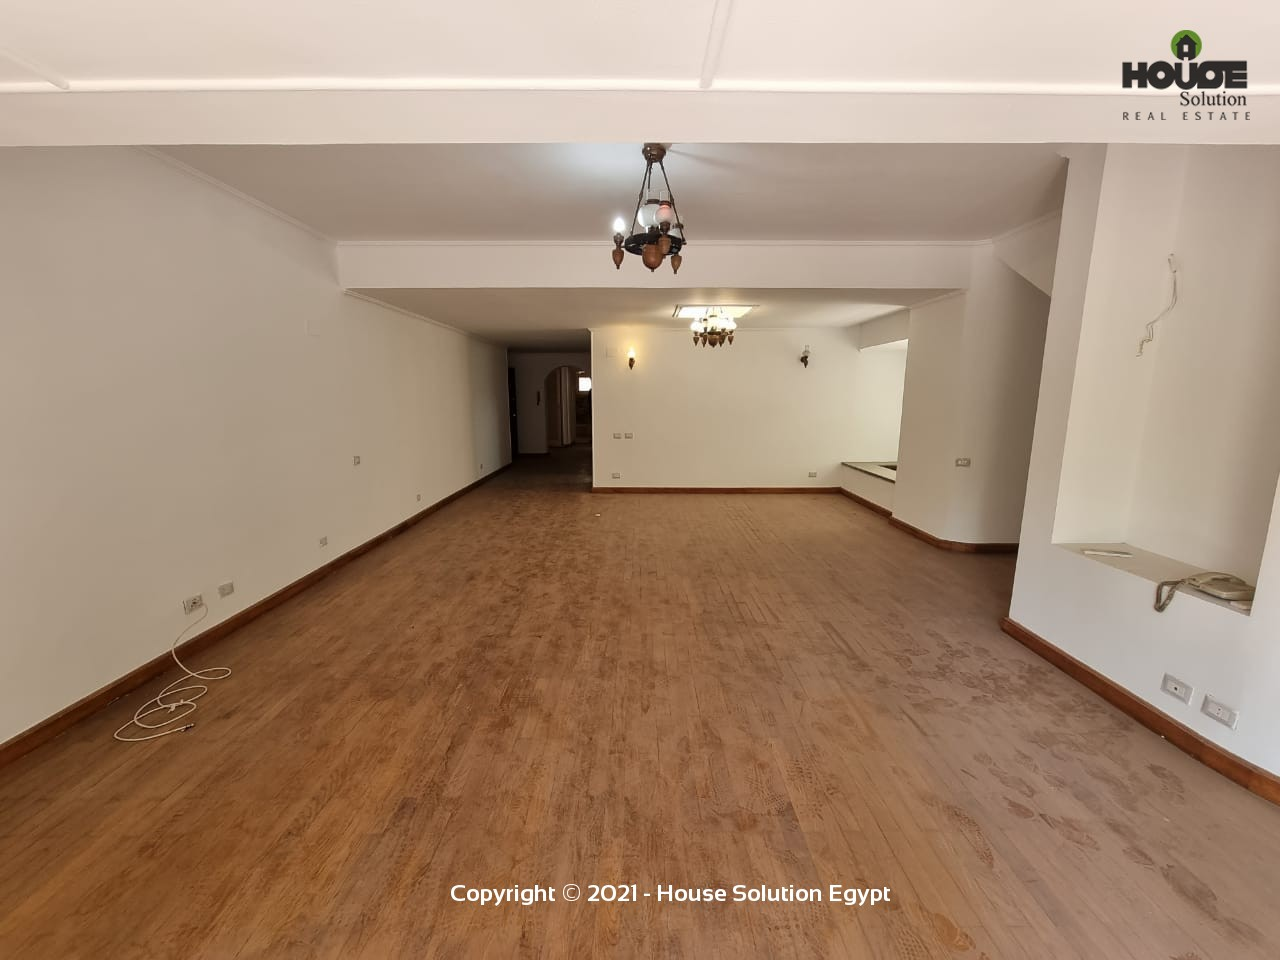 Sunny Affordable Apartment For Rent In Degla El Maadi  - 5033 Featured Image